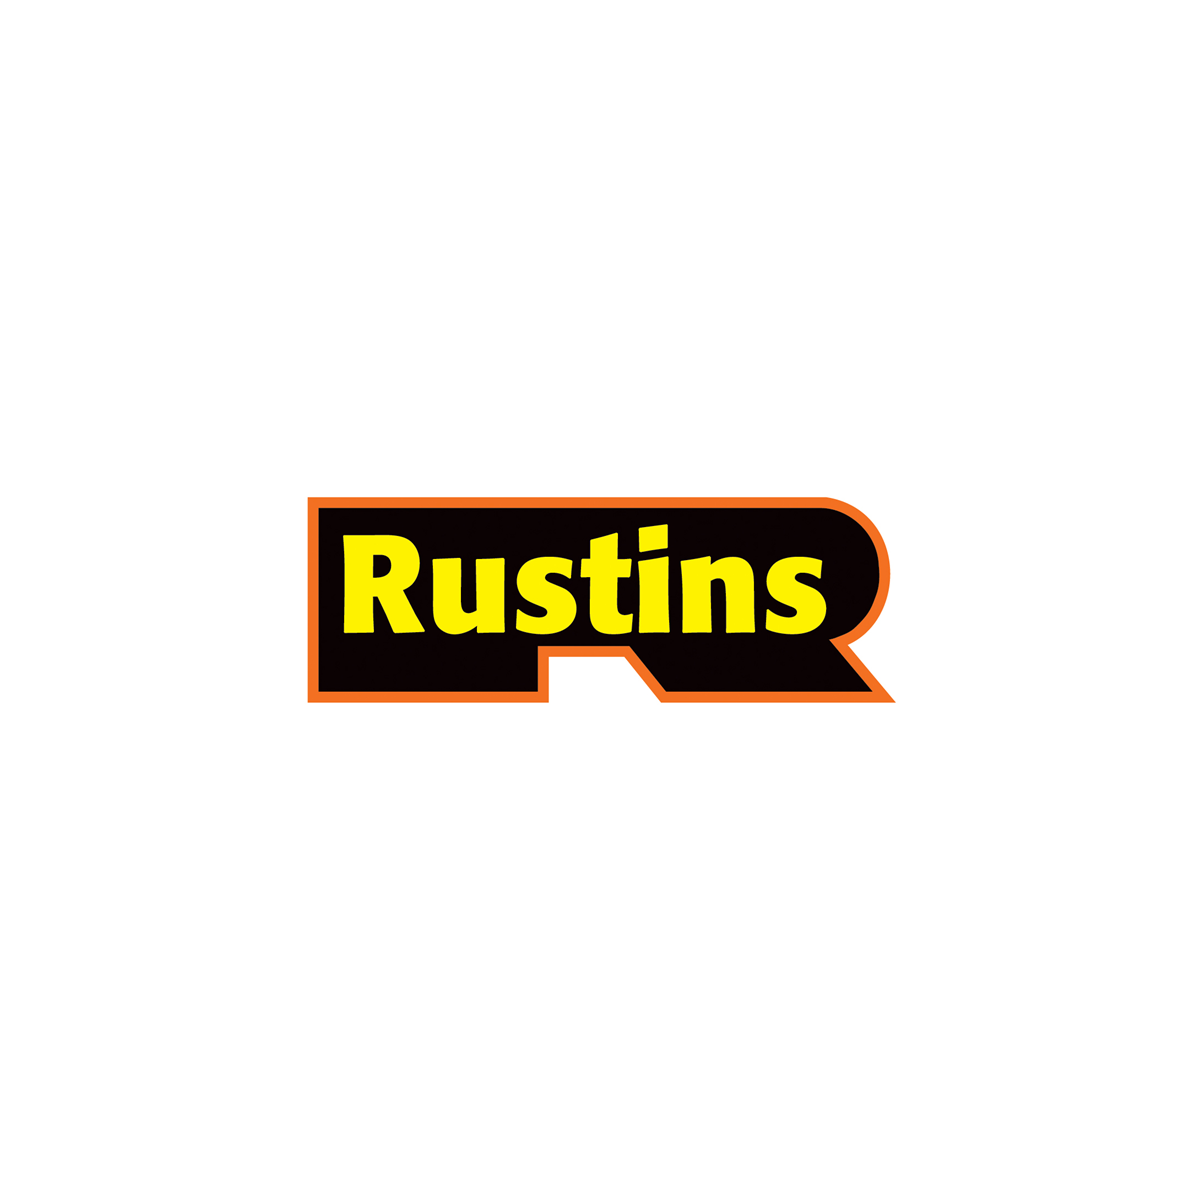 Where to buy Rustins Products